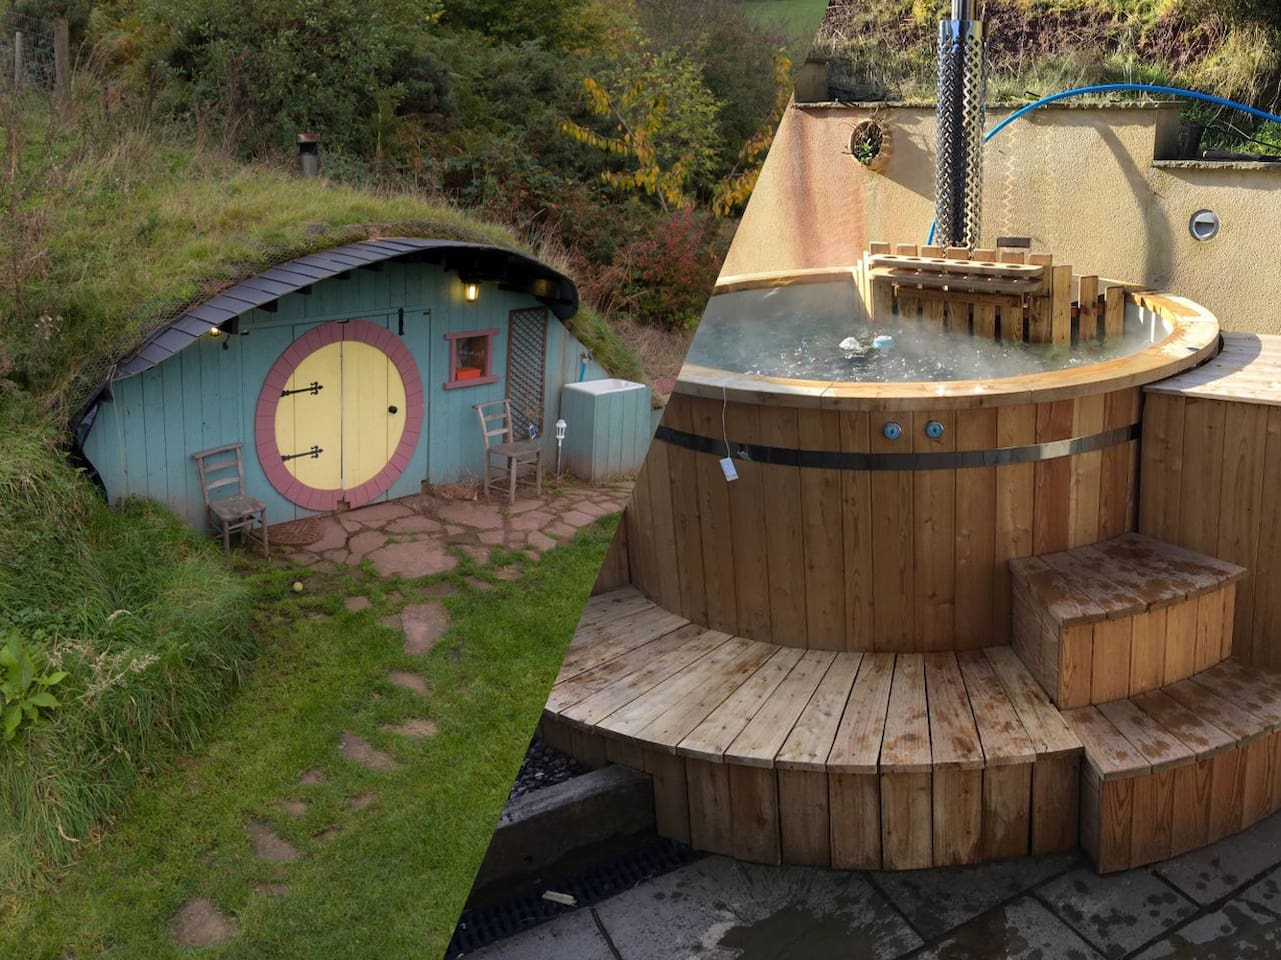 Book both the Hobbit house and the room with hot tub to get accommodation for 5.